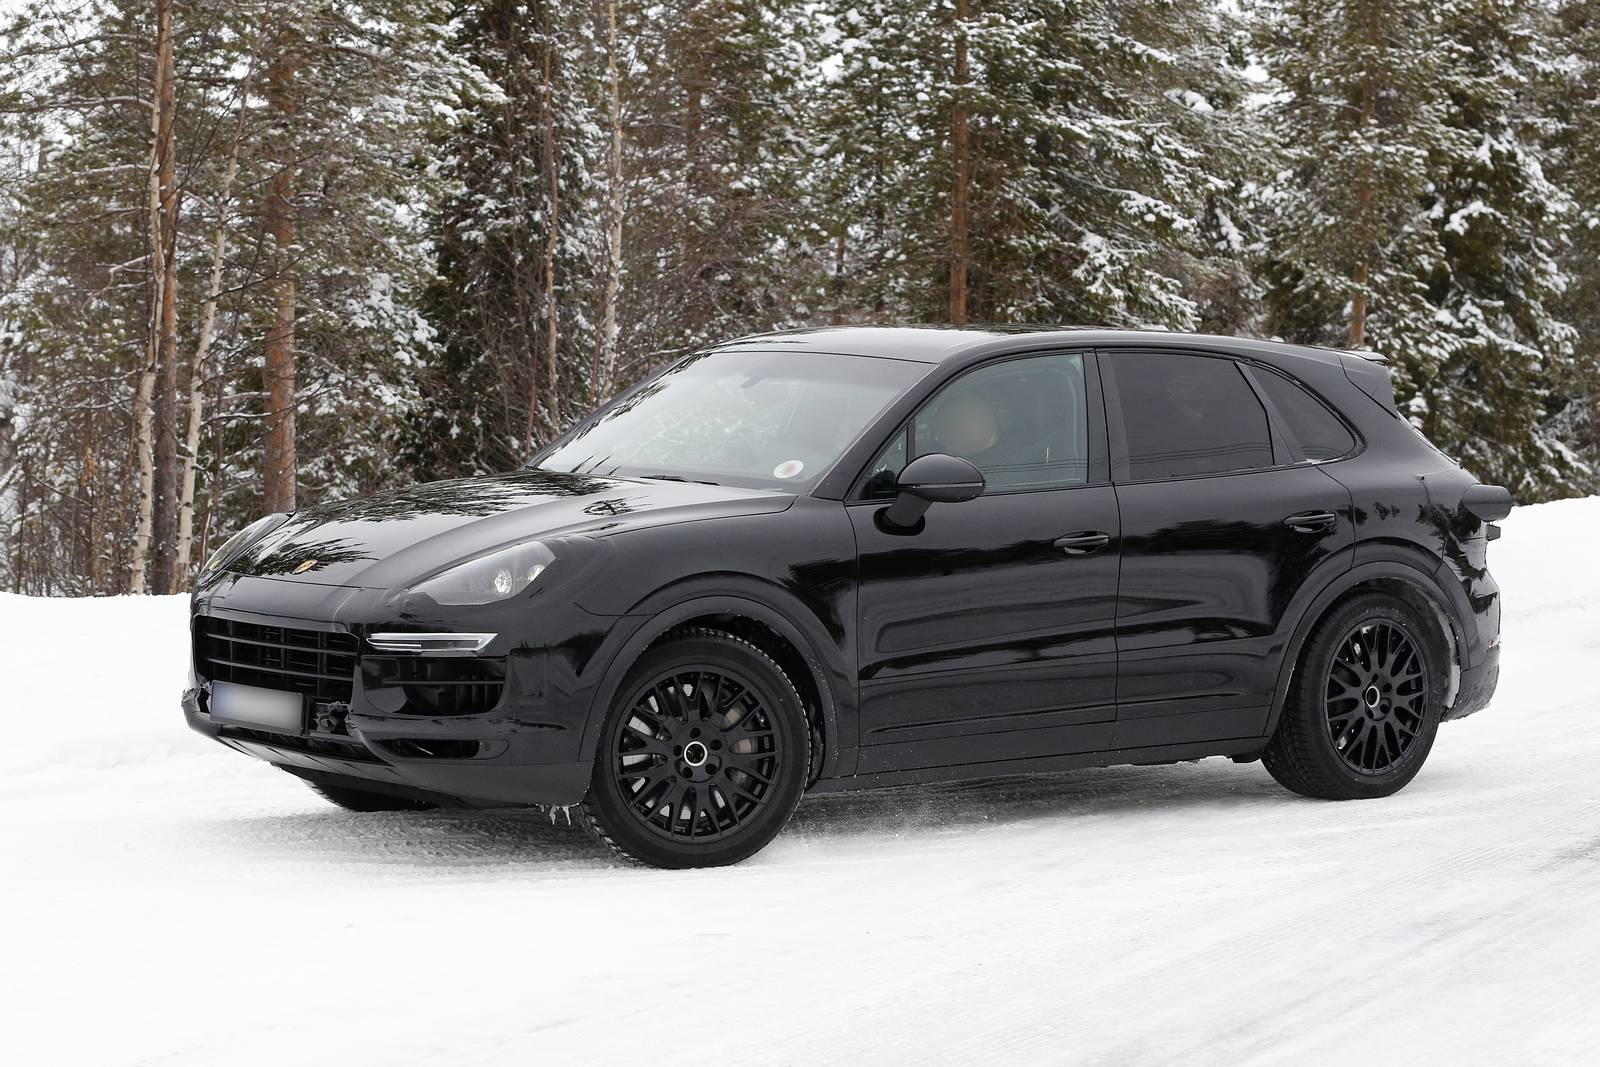 new spy shots of next gen porsche cayenne gtspirit. Black Bedroom Furniture Sets. Home Design Ideas